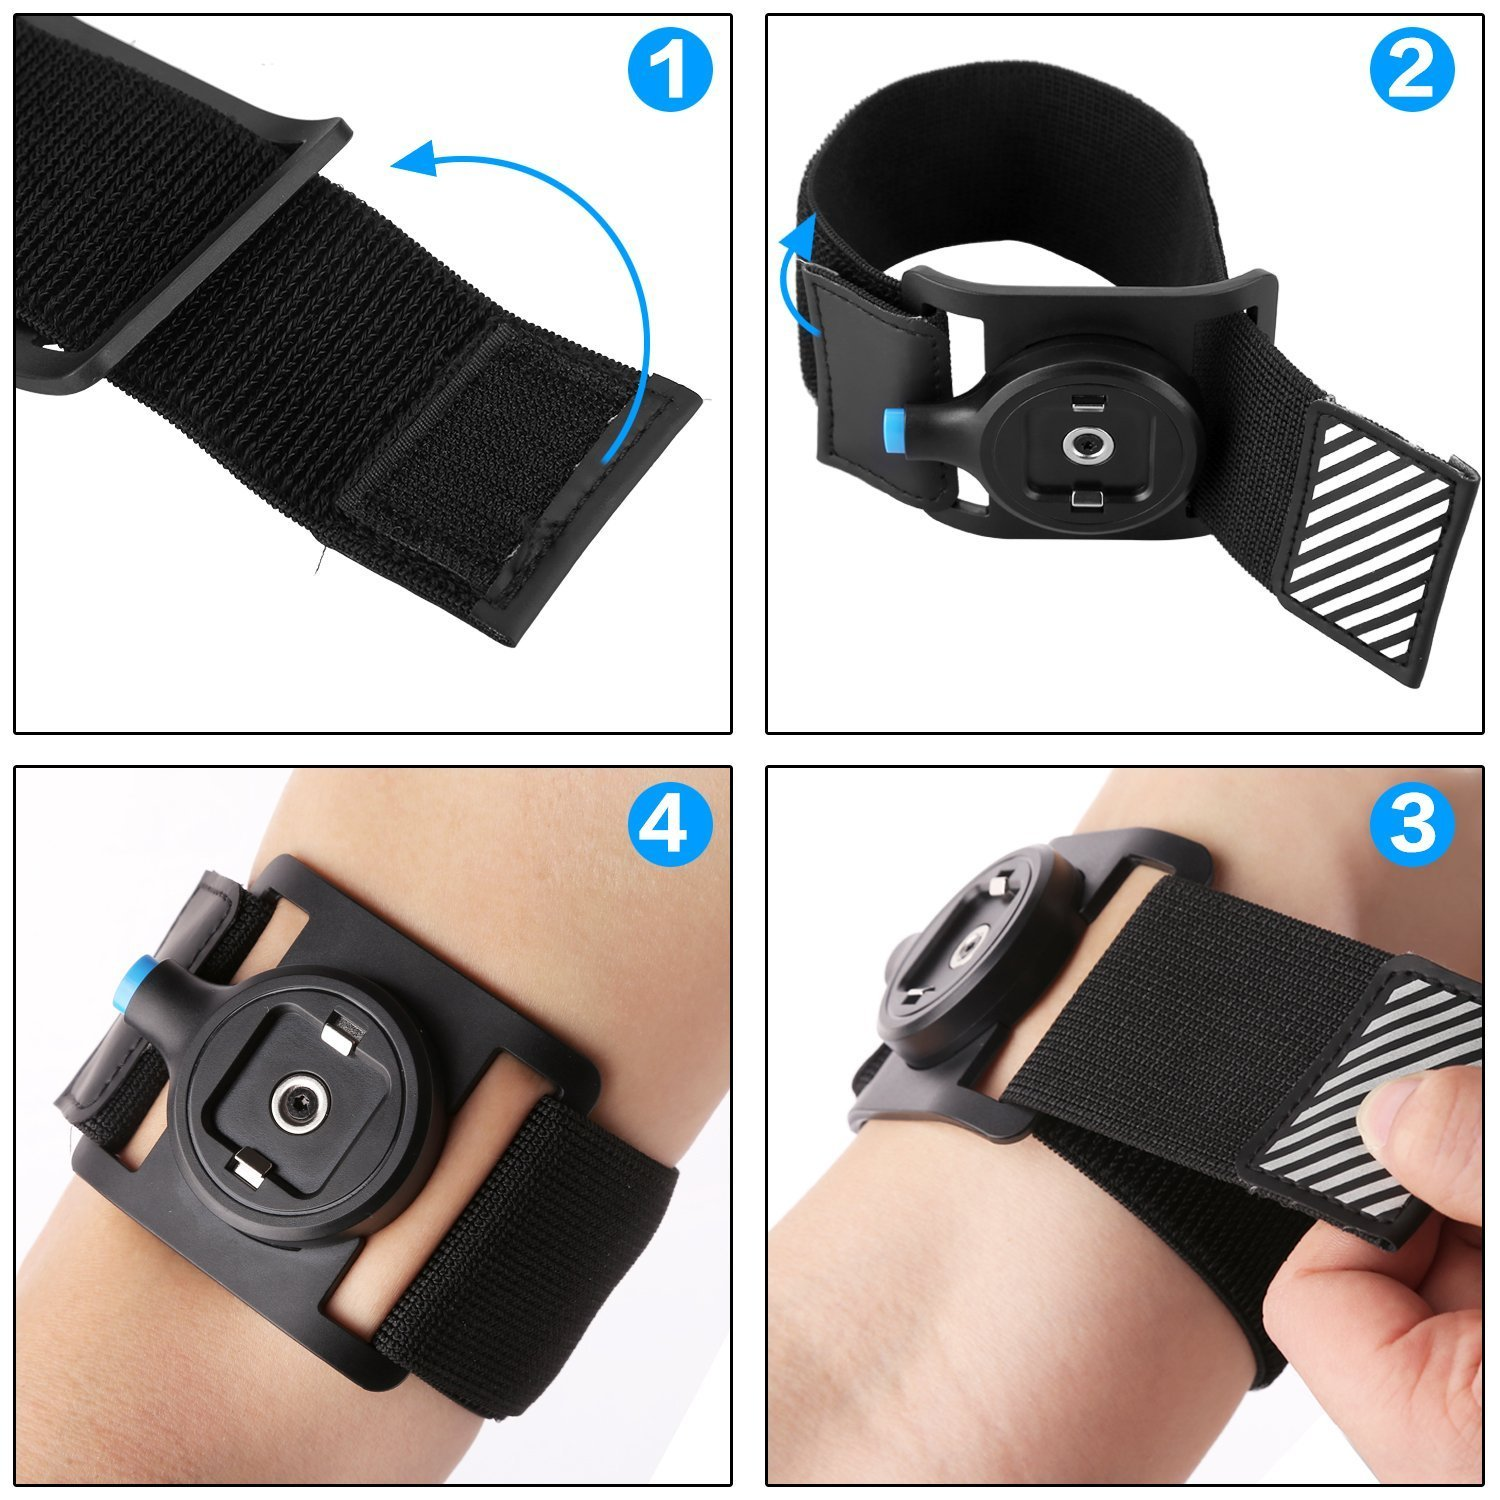 Sports Armhand, Foison,Quick Mount Universal Belt Clip with Magnet and Buckle Lock, Lightweight and Shake-proof Gym Arm Bag, Universal Compatibility Phone Armband (Blue)